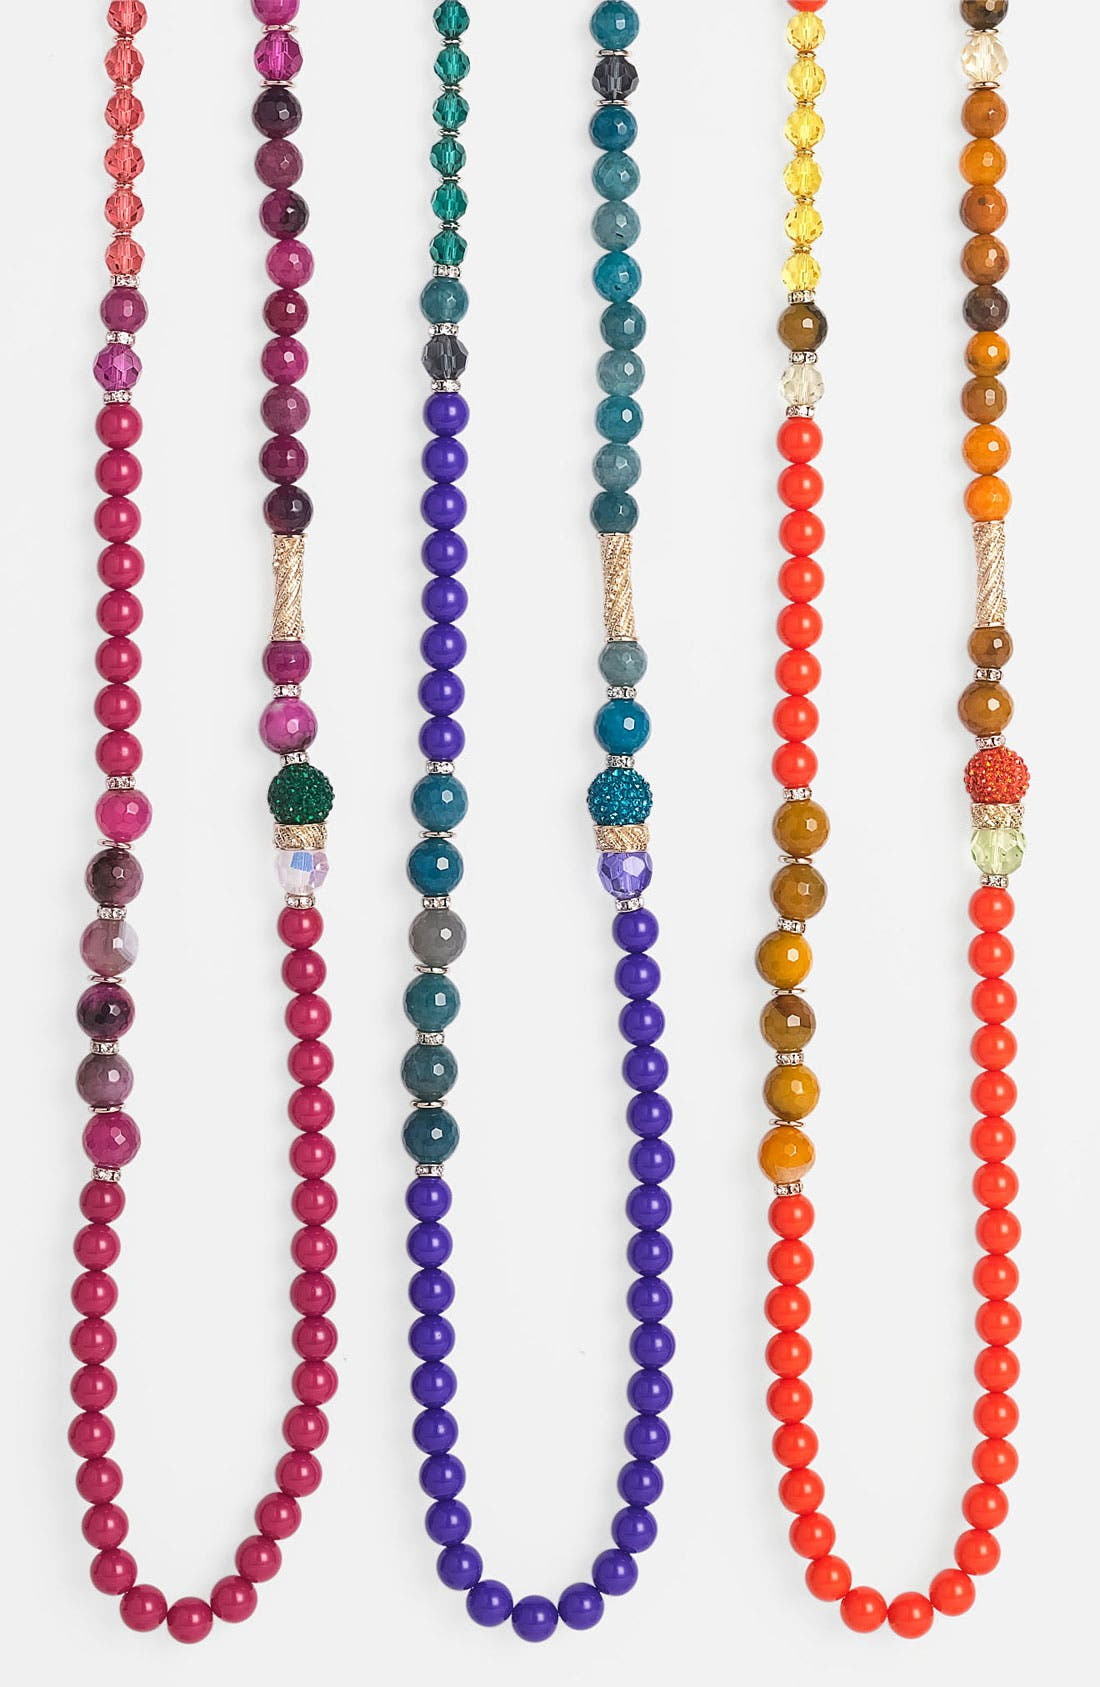 Alternate Image 1 Selected - Sequin 'Holiday Hockney' Long Necklace (Nordstrom Exclusive)